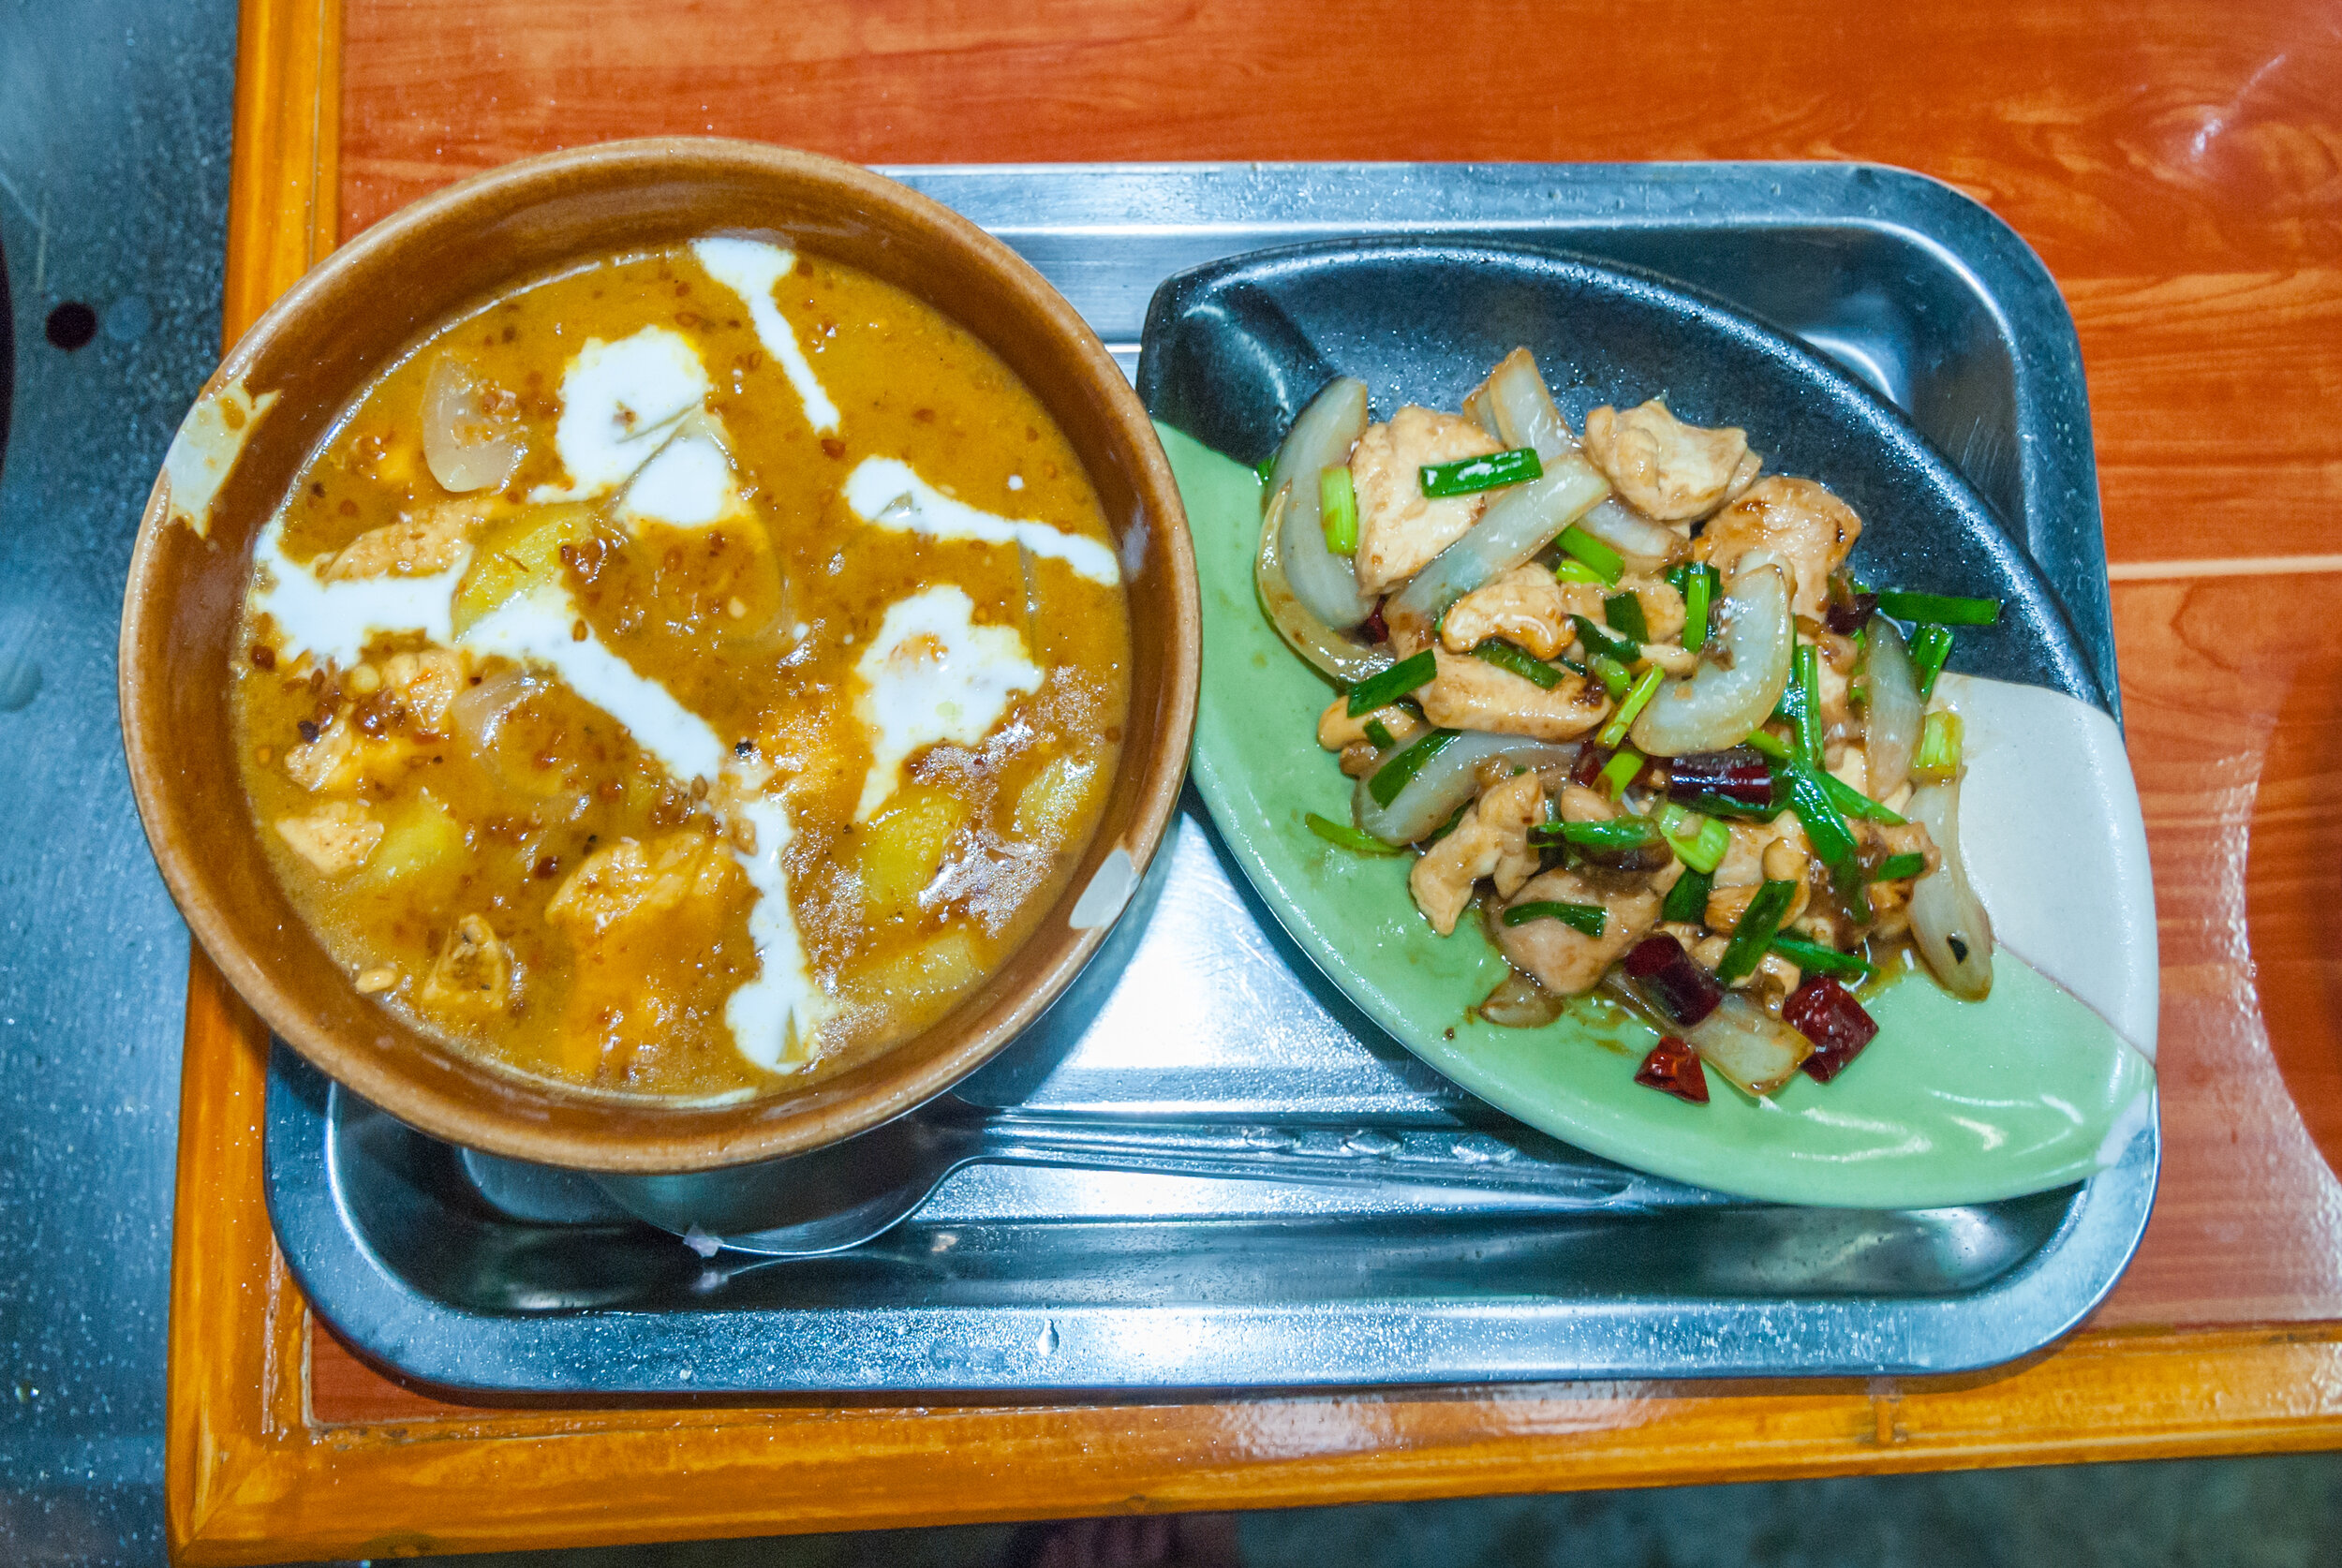 One of the most popular Thai dishes in Bangkok cuisine is Massaman Curry